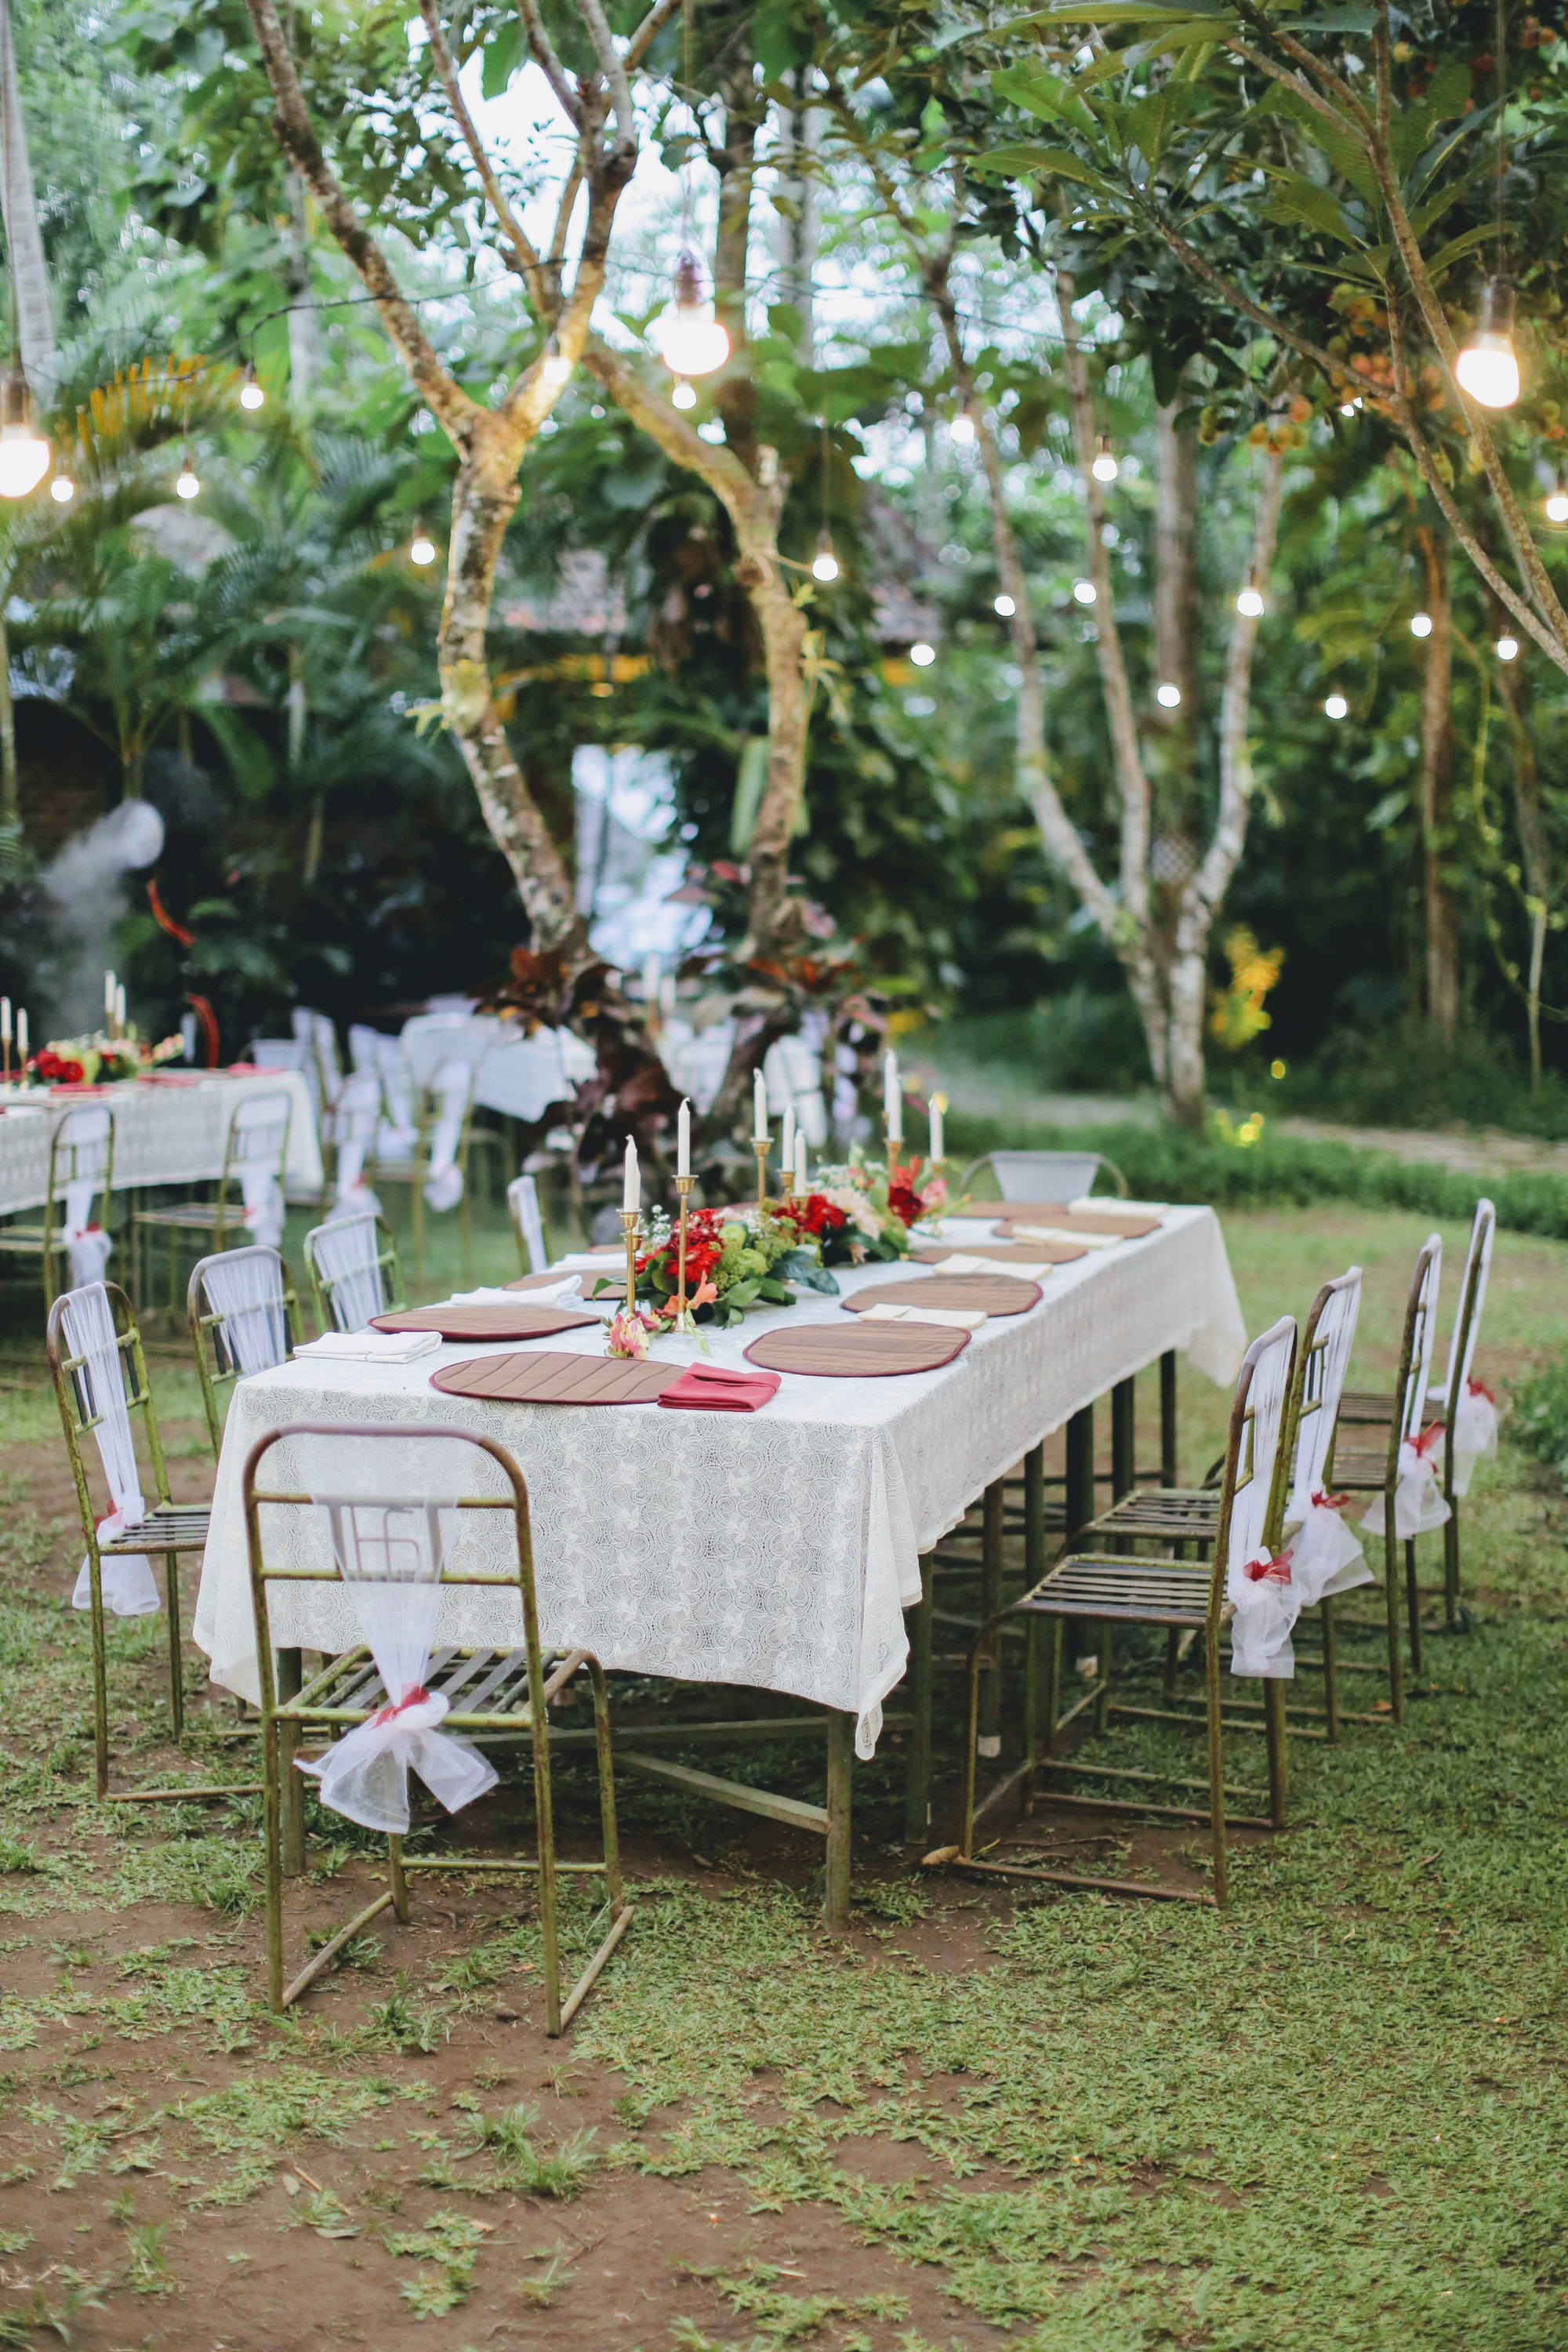 dinner party | spring dinner party | dinner party ideas | spring | party | party ideas | dinner ideas | themed dinner party